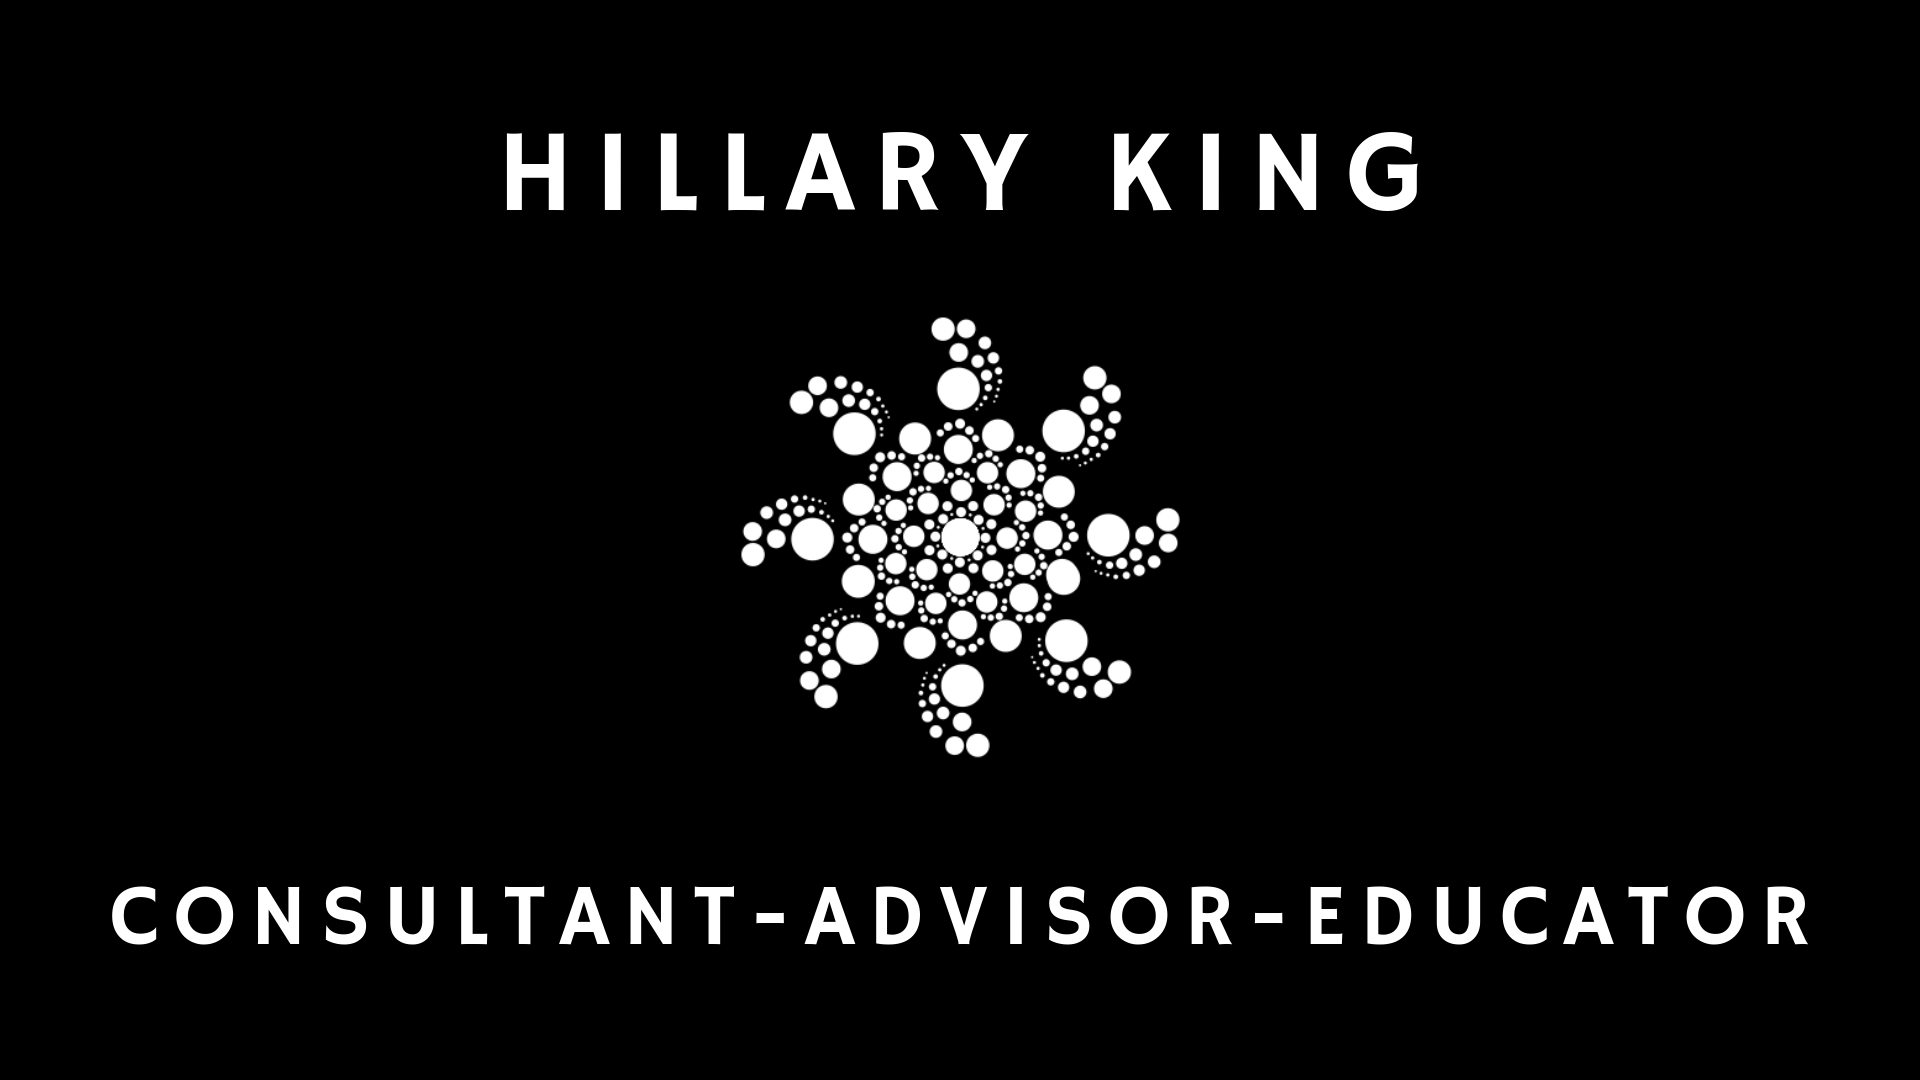 HILLARY KING (1).png